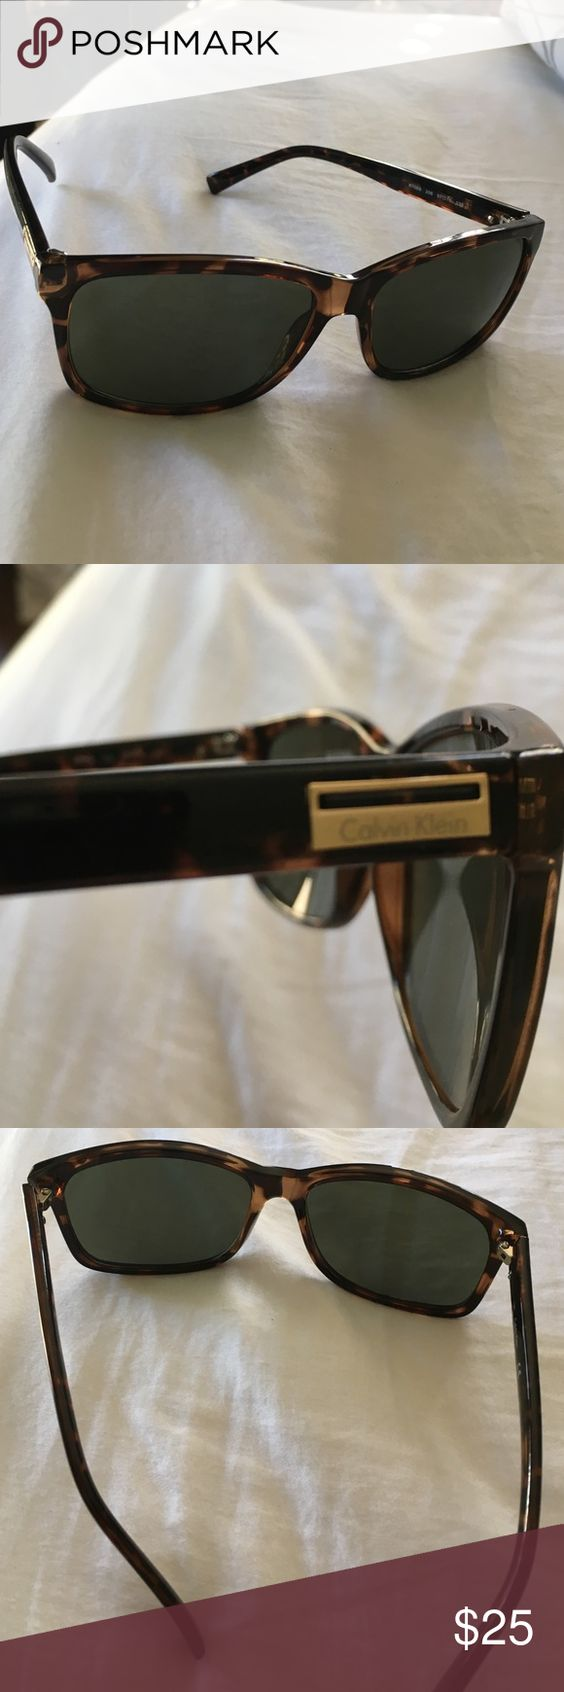 Calvin Klein sunglasses Tortoise shell Calvin Klein sunglasses. Never worn. Like new! Calvin Klein Accessories Sunglasses